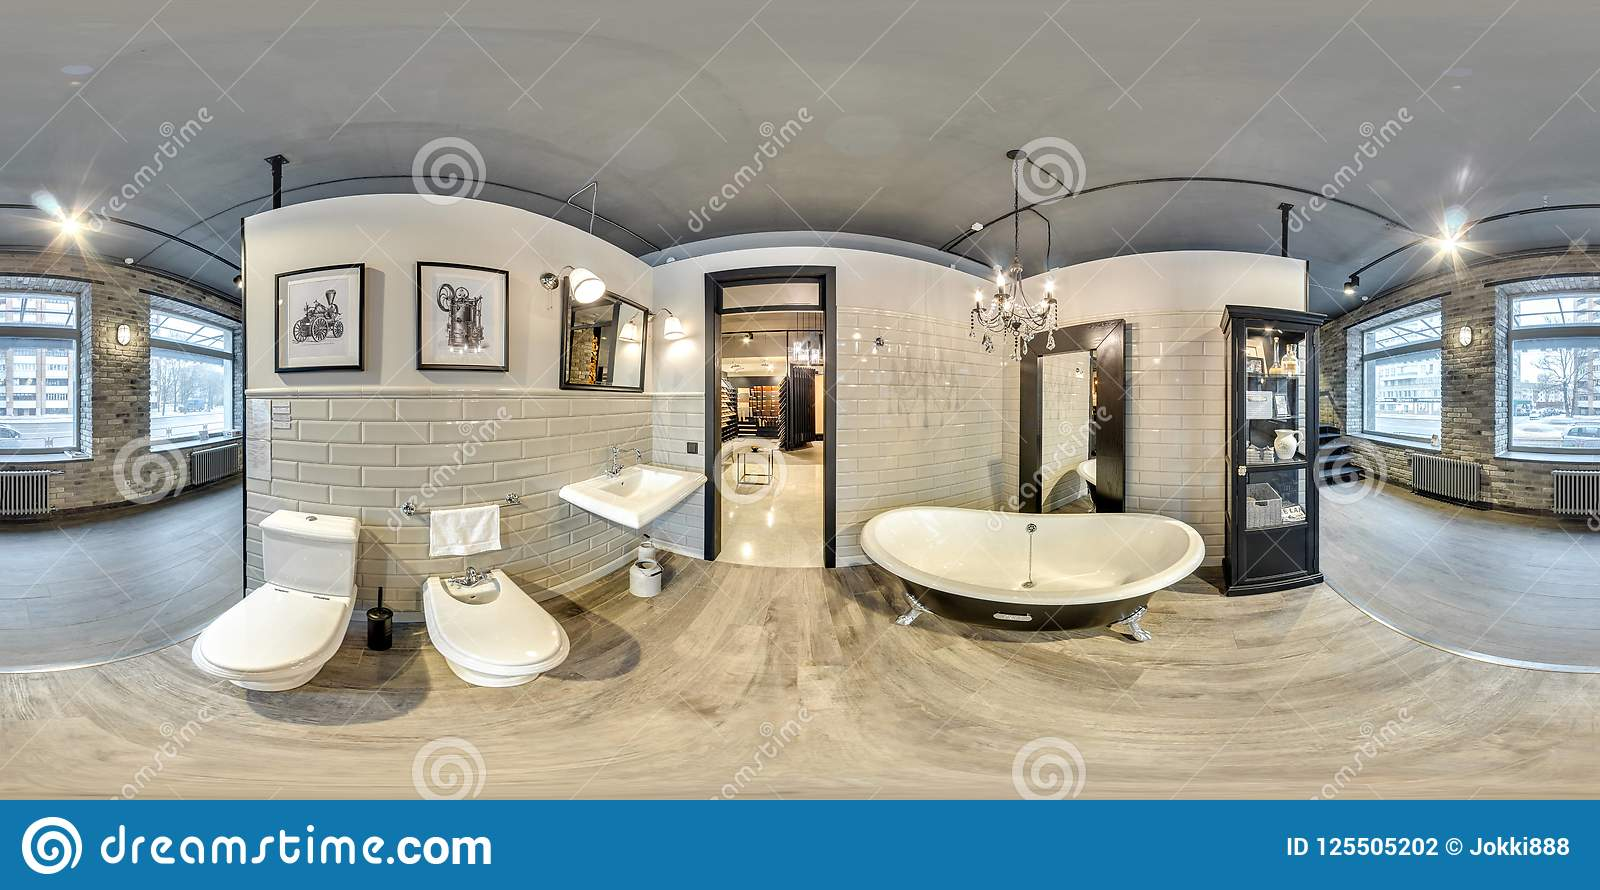 Moscow 2018 3d spherical panorama with 360 degree viewing angle of fashionable interior of furniture design store modern mall loft bathroom